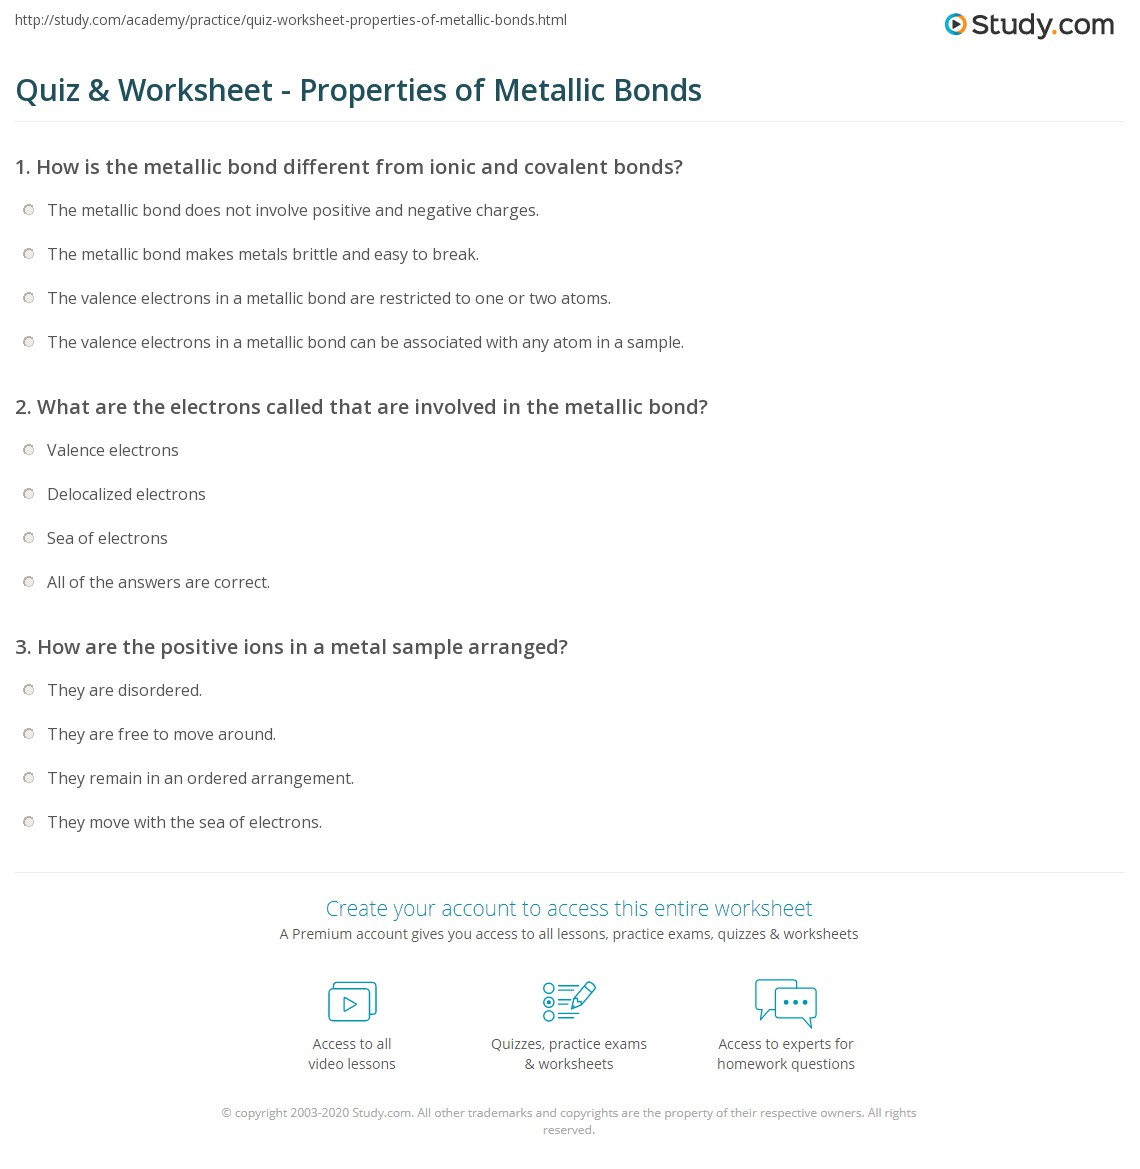 Quiz & Worksheet - Properties of Metallic Bonds | Study.com